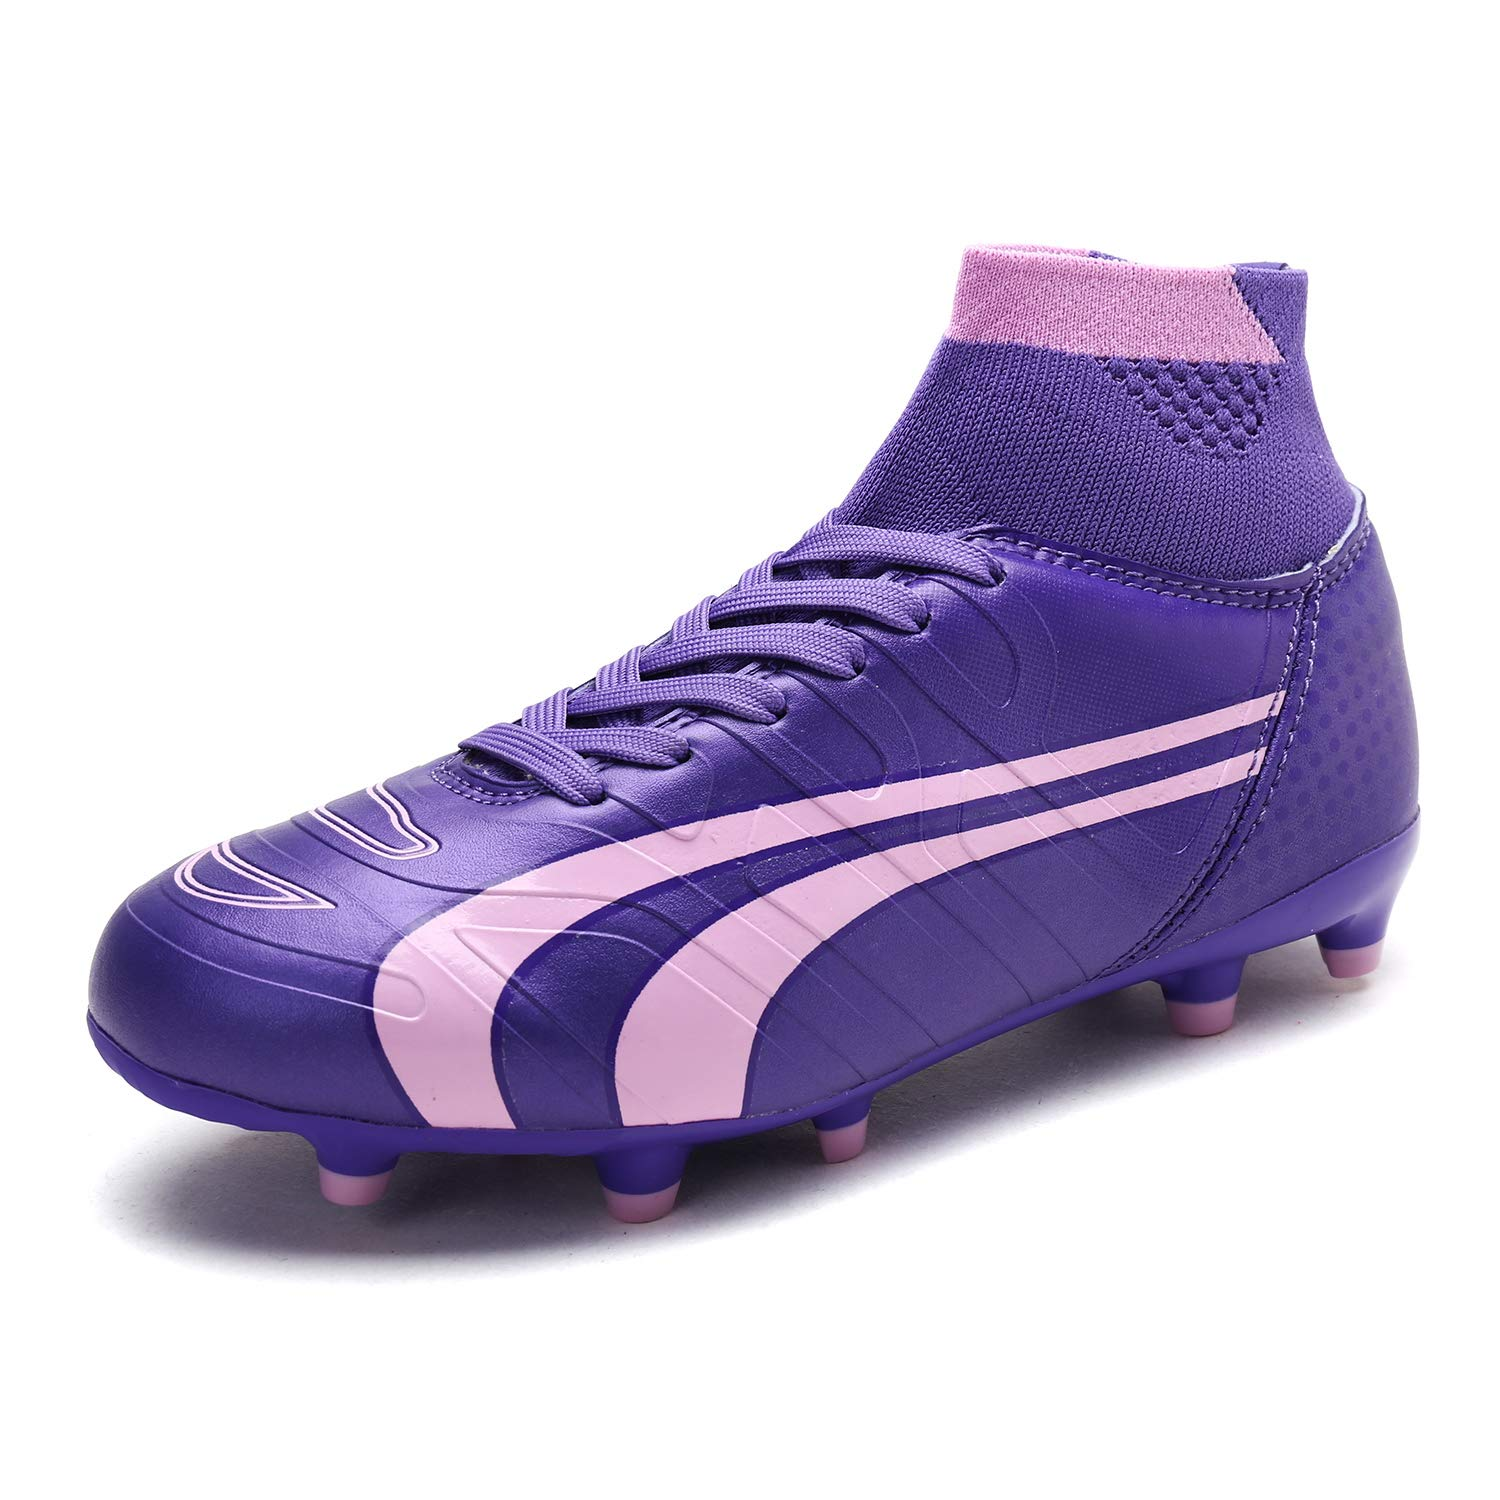 d660b0ef9 DREAM PAIRS Big Kid 160862-K Purple Pink Soccer Football Cleats Shoes - 5 M  US Big Kid